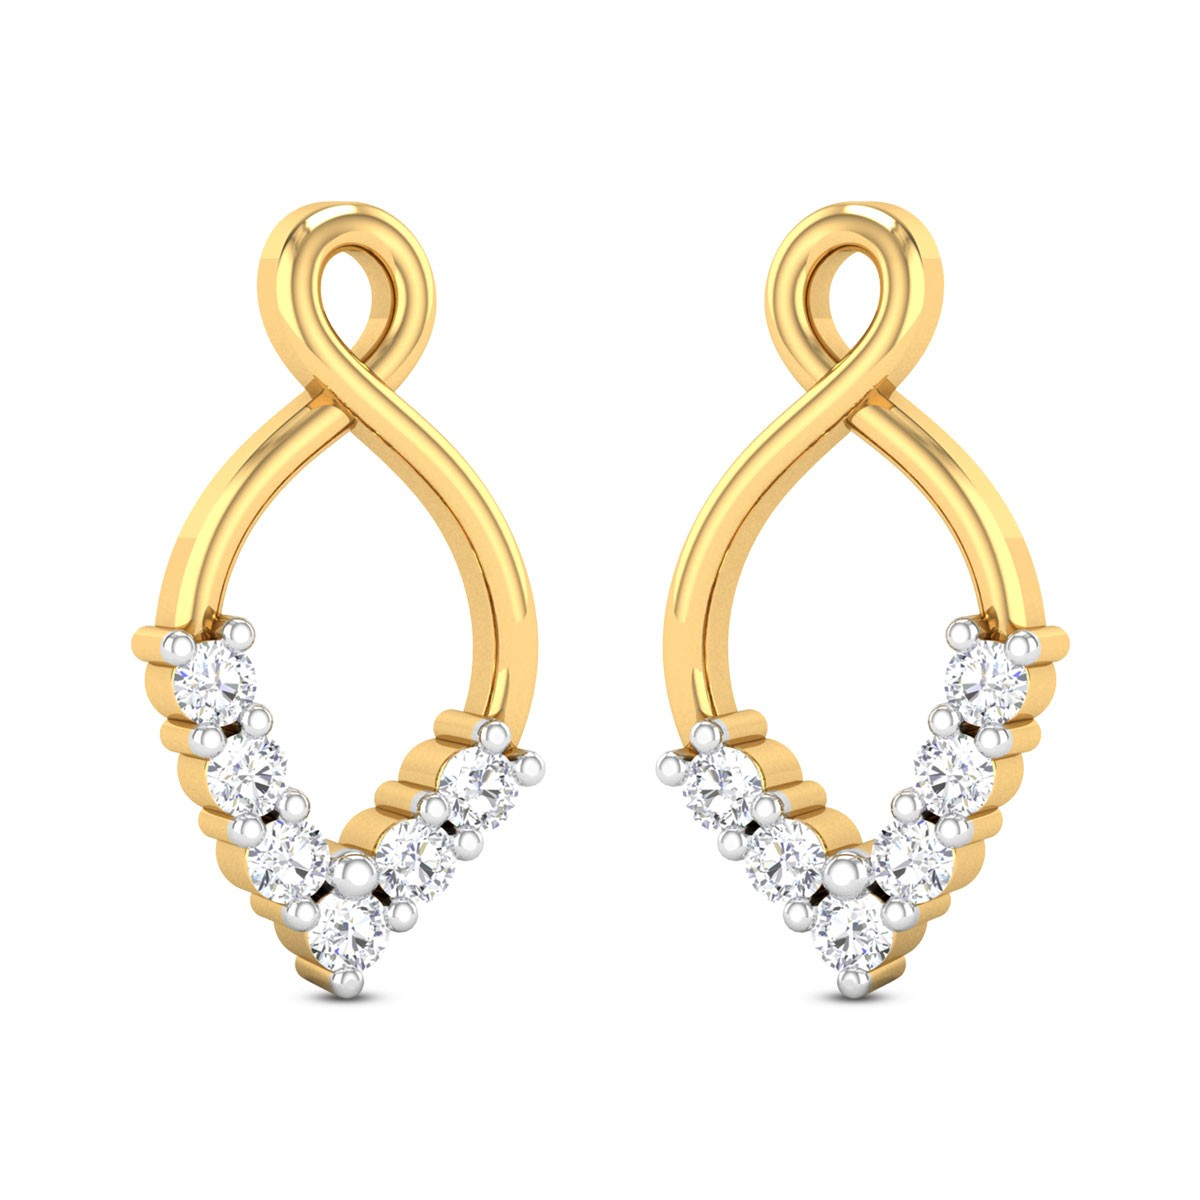 Claire Diamond Earrings